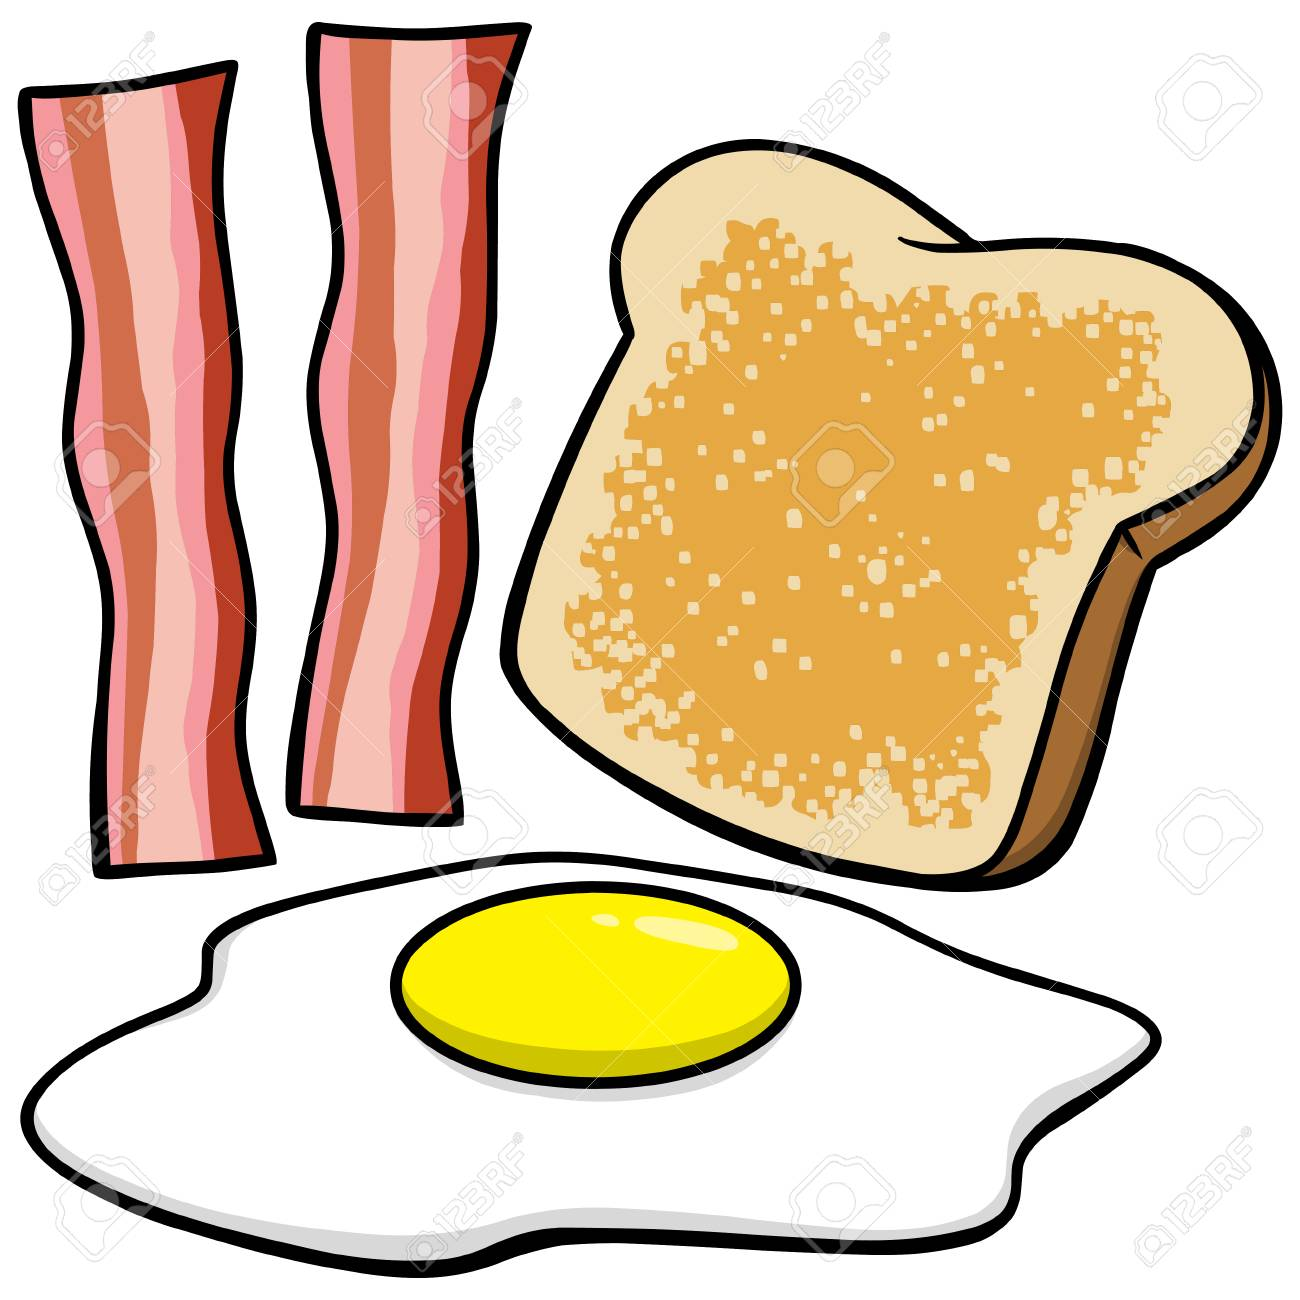 Bacon Eggs and Toast.